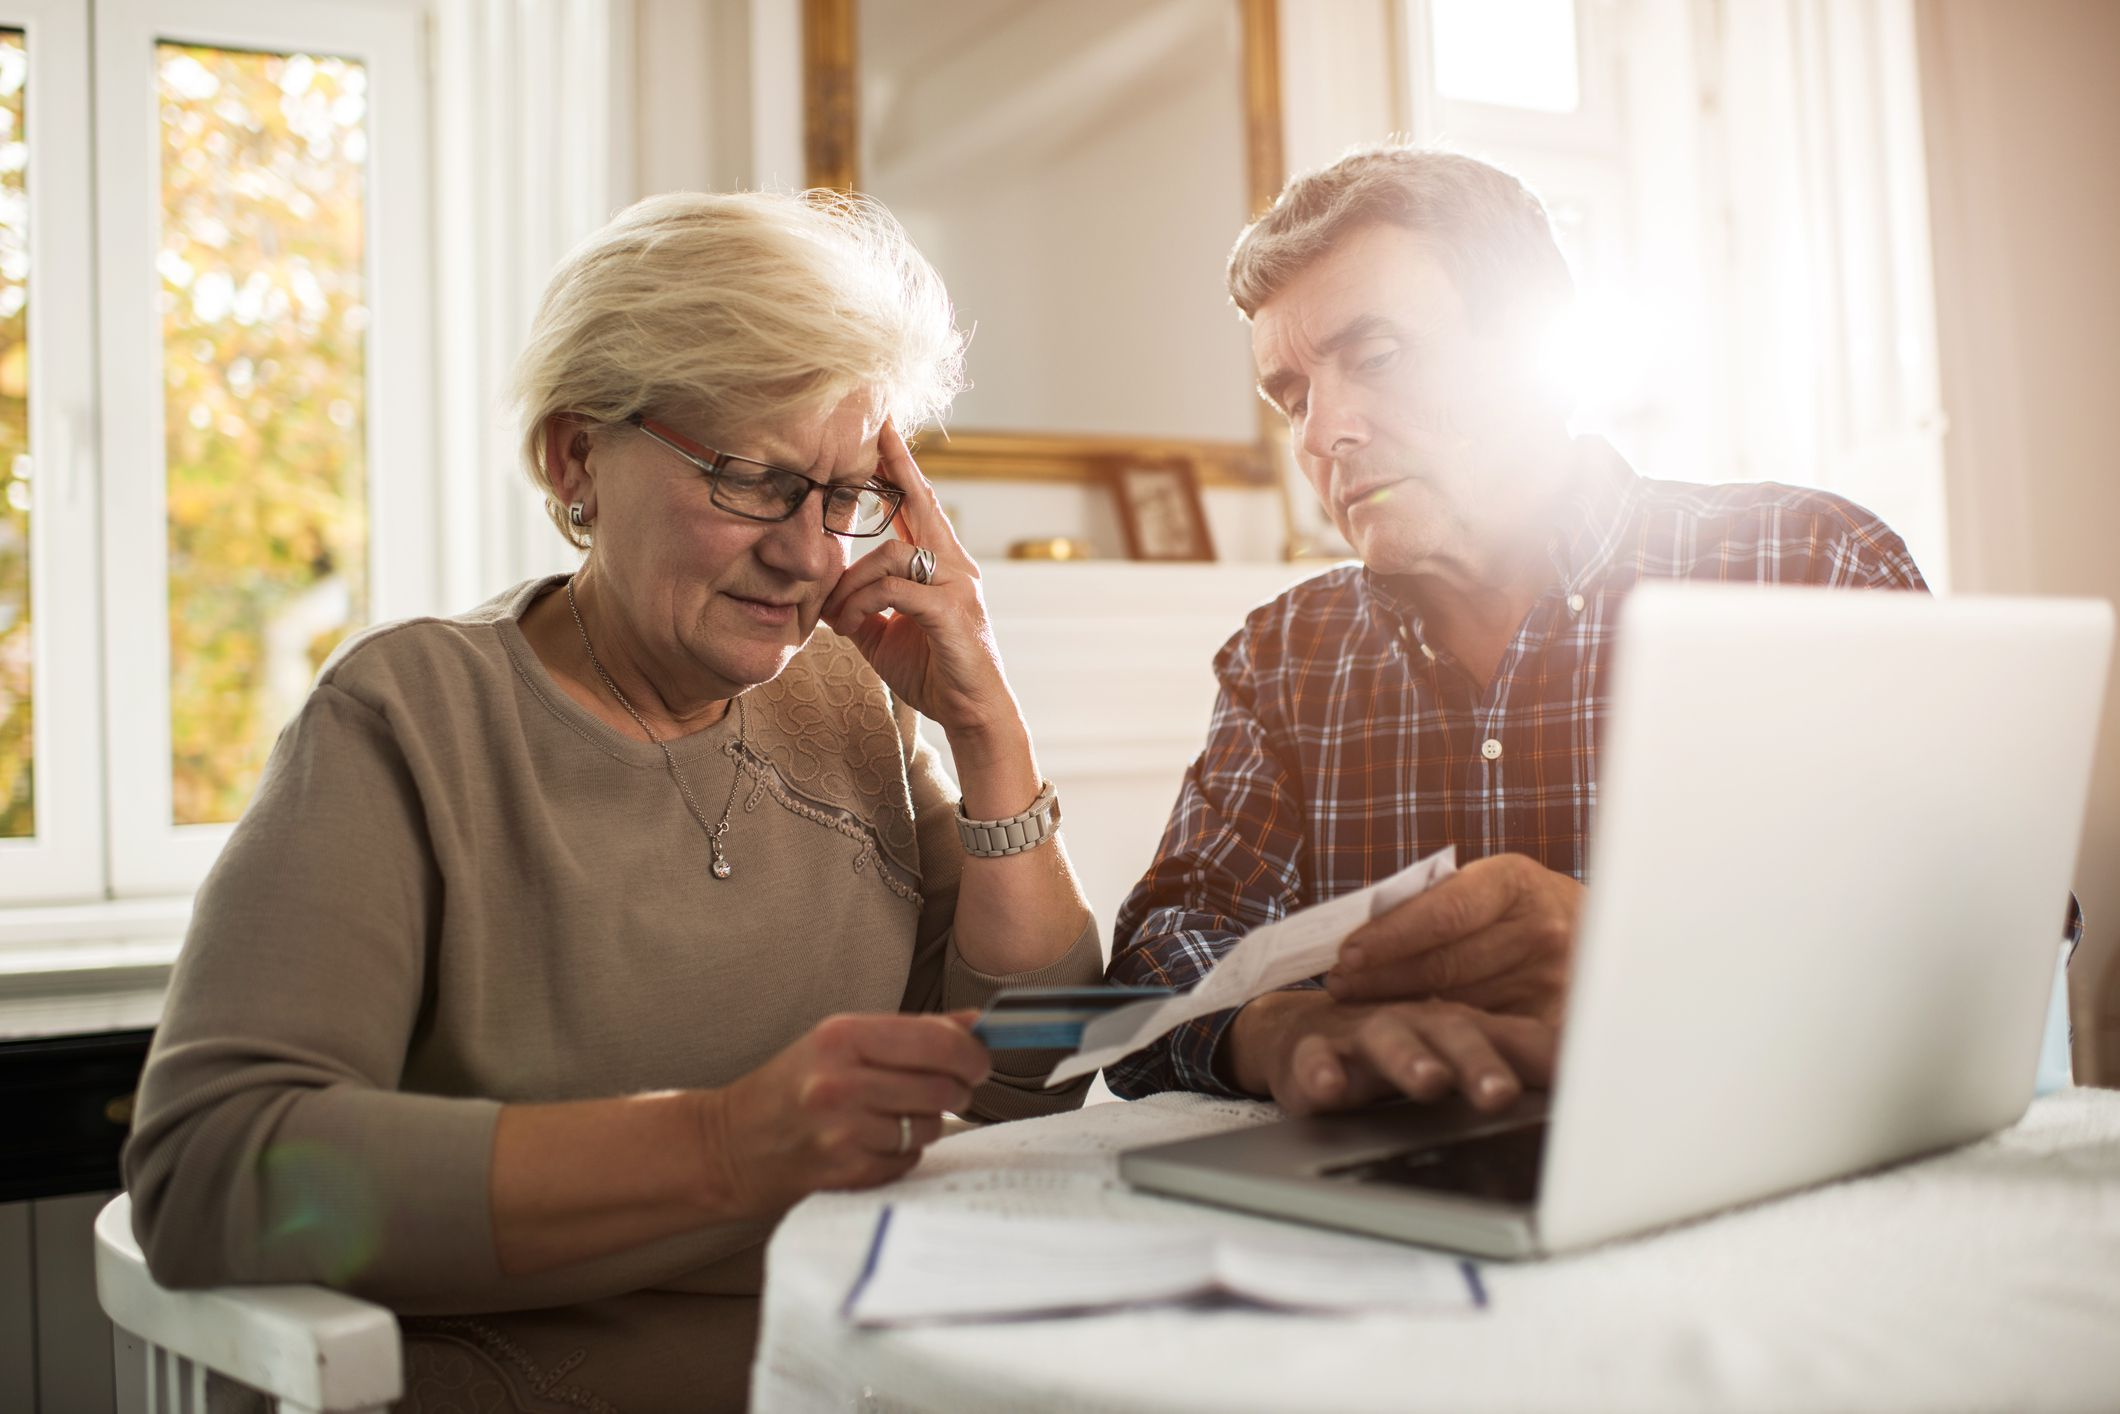 The SECURE Act—A New Tax Law That Benefits Retirees